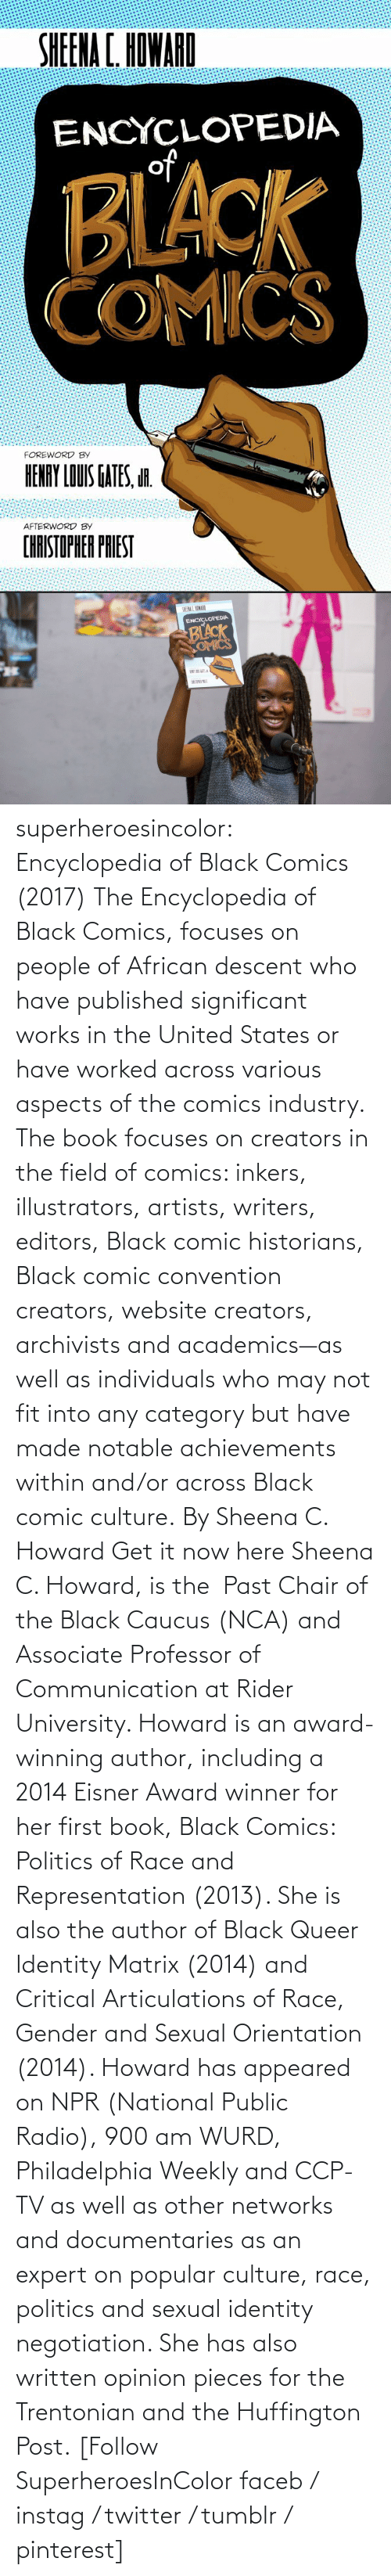 Written: superheroesincolor: Encyclopedia of Black Comics (2017) The Encyclopedia of Black Comics, focuses on people of African descent who have published significant works in the United States or have worked across various aspects of the comics industry.  The book focuses on creators in the field of comics: inkers, illustrators, artists, writers, editors, Black comic historians, Black comic convention creators, website creators, archivists and academics—as well as individuals who may not fit into any category but have made notable achievements within and/or across Black comic culture. By Sheena C. Howard Get it now here  Sheena C. Howard, is the  Past Chair of the Black Caucus (NCA) and Associate Professor of Communication at Rider University. Howard is an award-winning author, including a 2014 Eisner Award winner for her first book, Black Comics: Politics of Race and Representation (2013). She is also the author of Black Queer Identity Matrix (2014) and Critical Articulations of Race, Gender and Sexual Orientation (2014). Howard has appeared on NPR (National Public Radio), 900 am WURD, Philadelphia Weekly and CCP-TV as well as other networks and documentaries as an expert on popular culture, race, politics and sexual identity negotiation. She has also written opinion pieces for the Trentonian and the Huffington Post.   [Follow SuperheroesInColor faceb / instag / twitter / tumblr / pinterest]